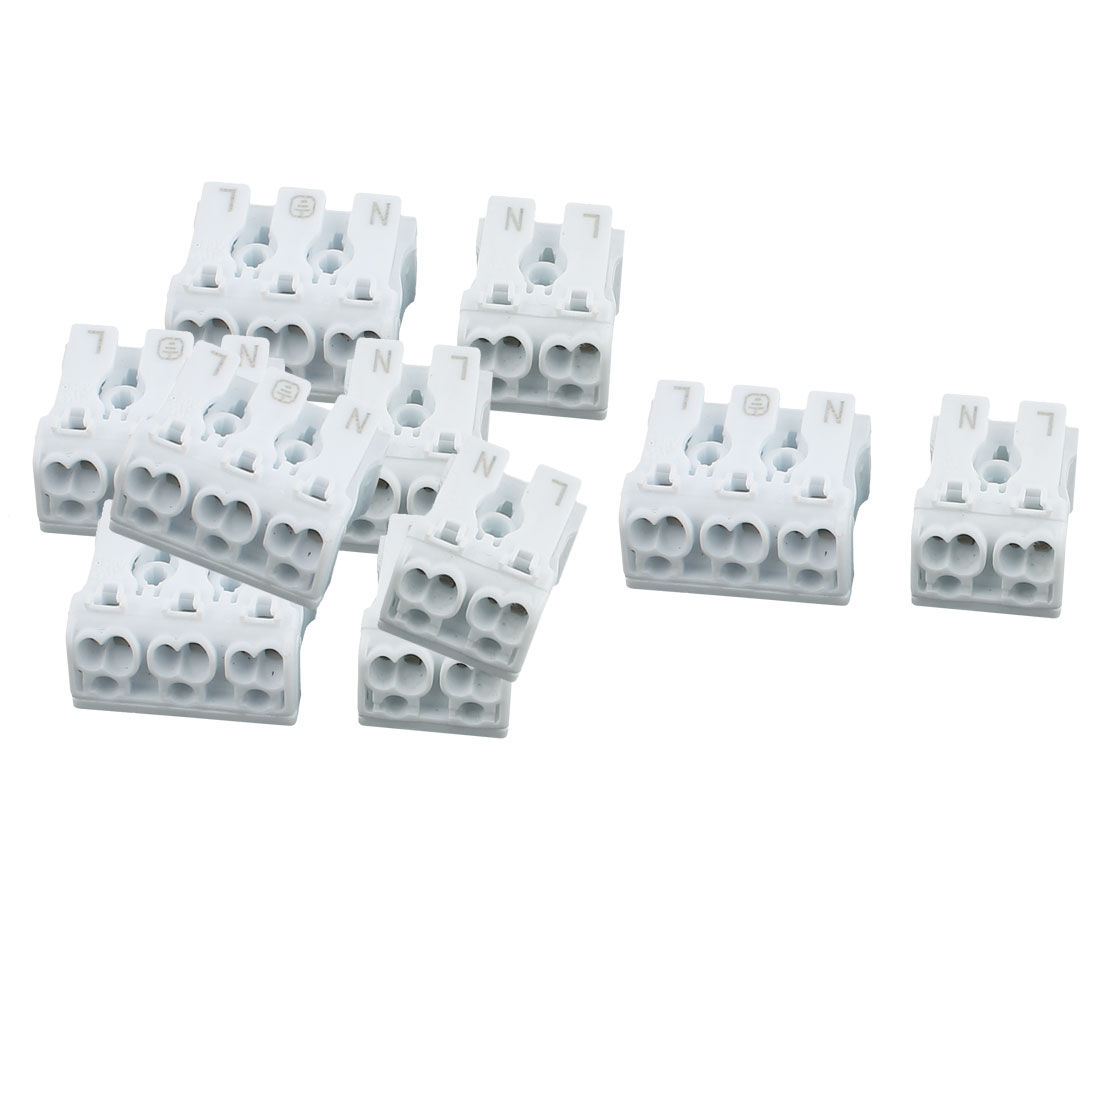 10 Pcs Audio Cable Wire Push in Jack Socket 2&3 Position Speaker Terminal Block White